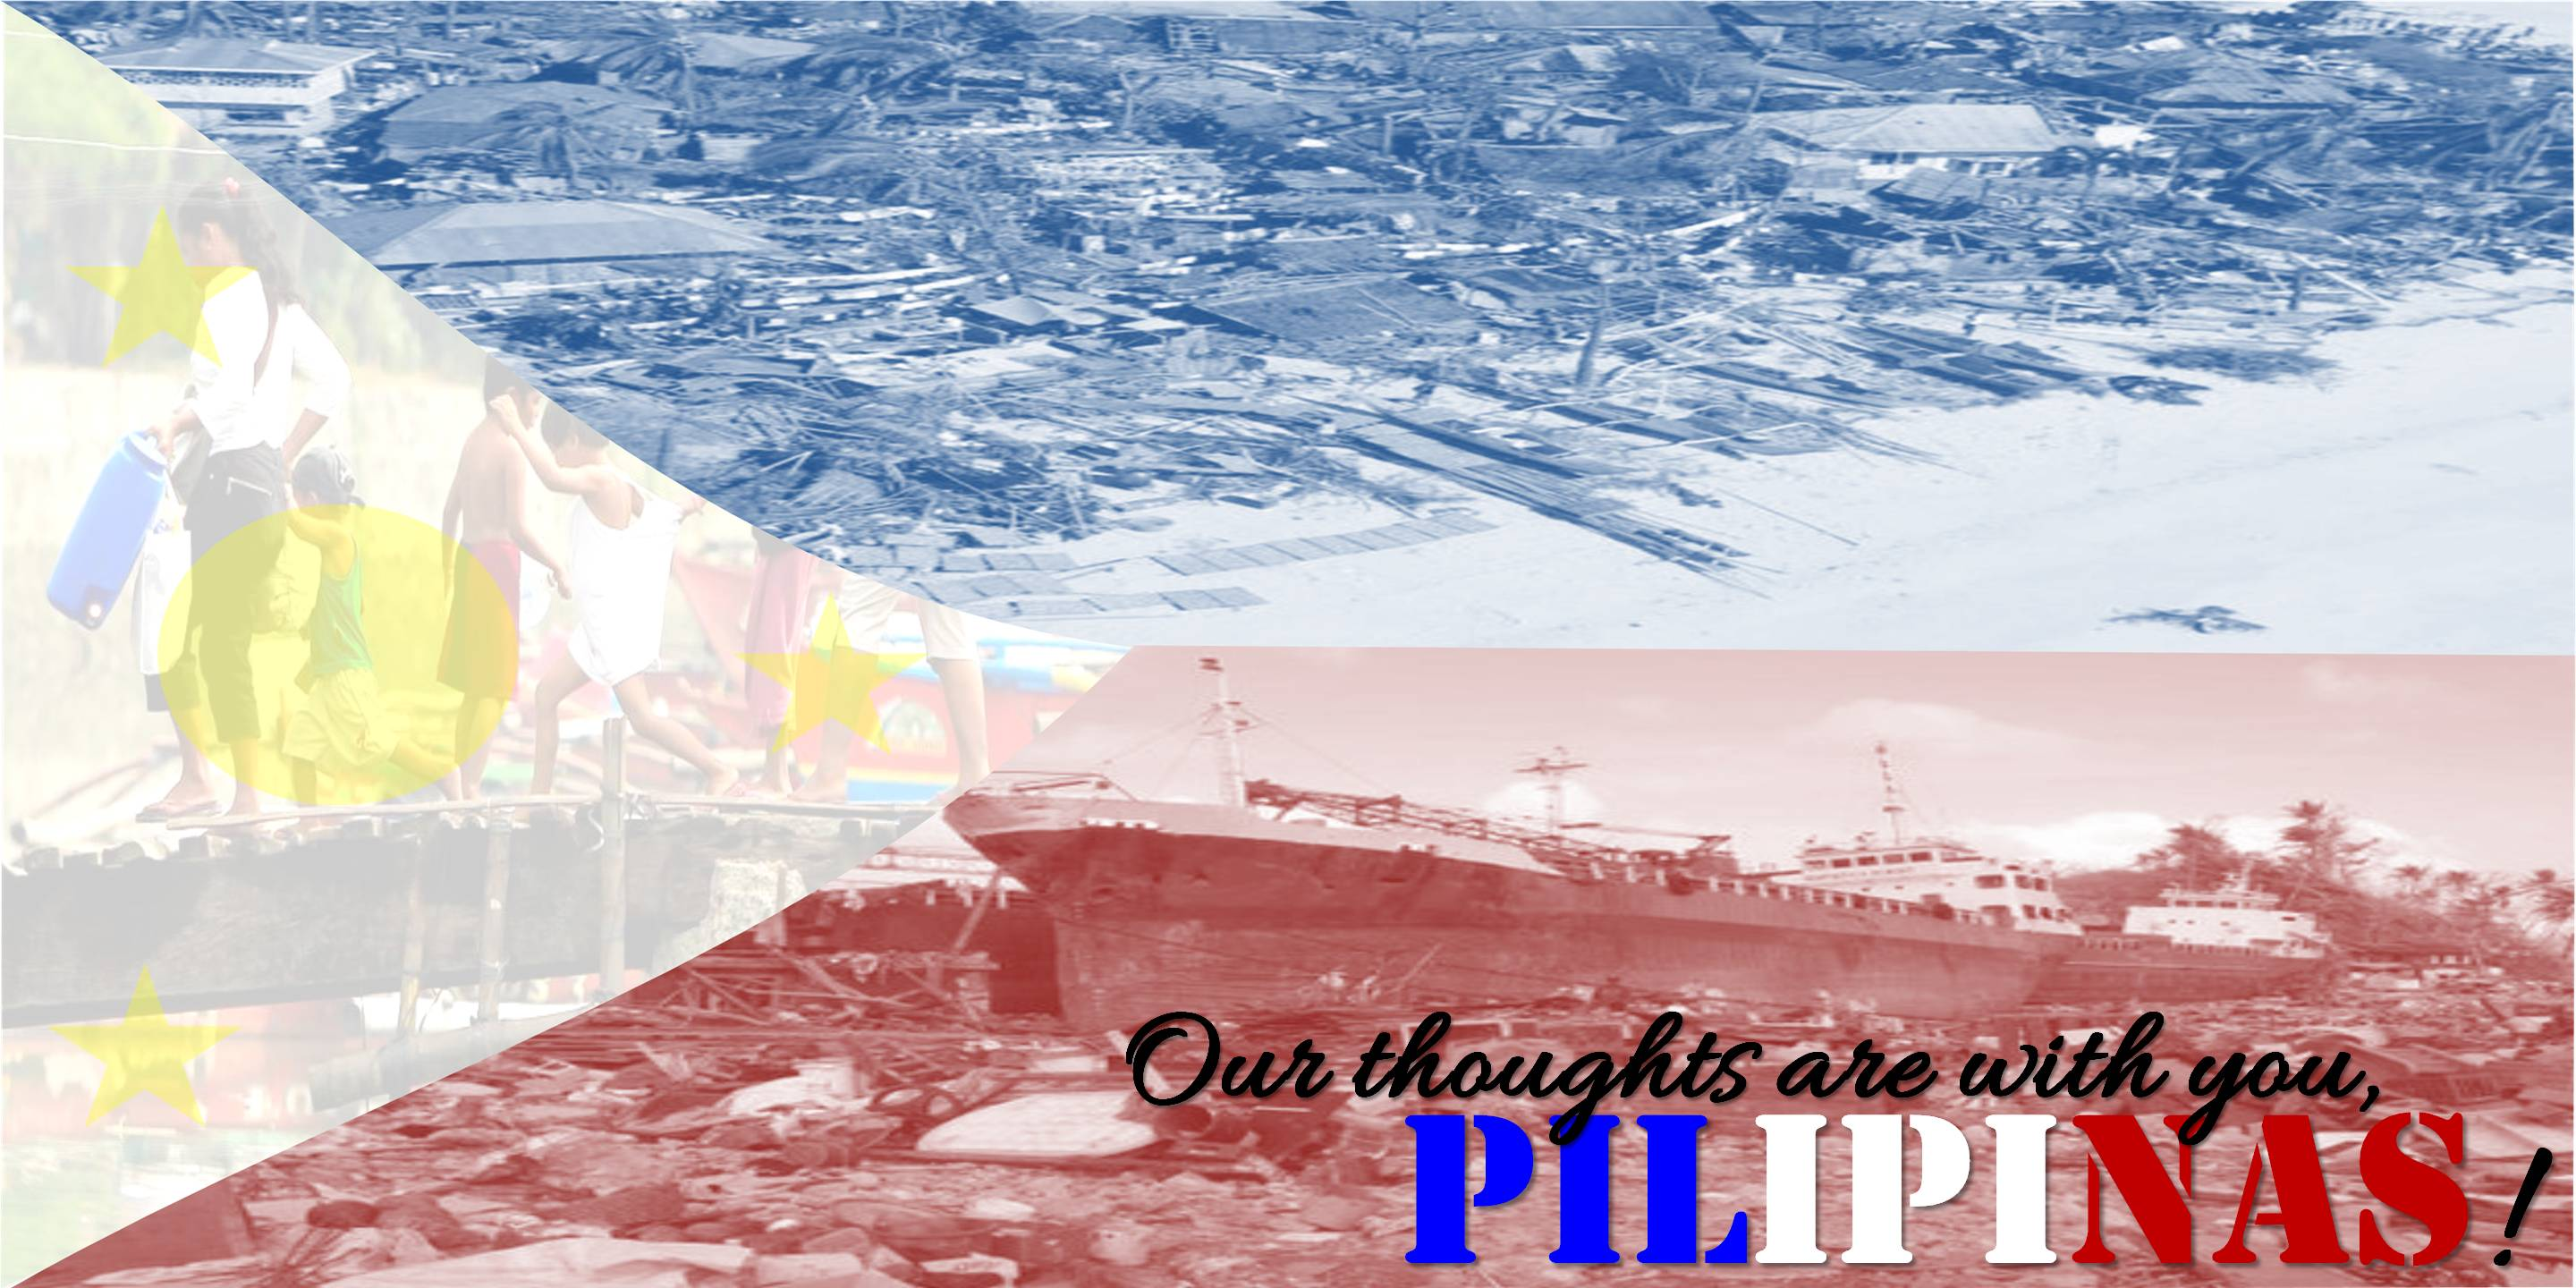 Our thoughts are with You Pilipinas